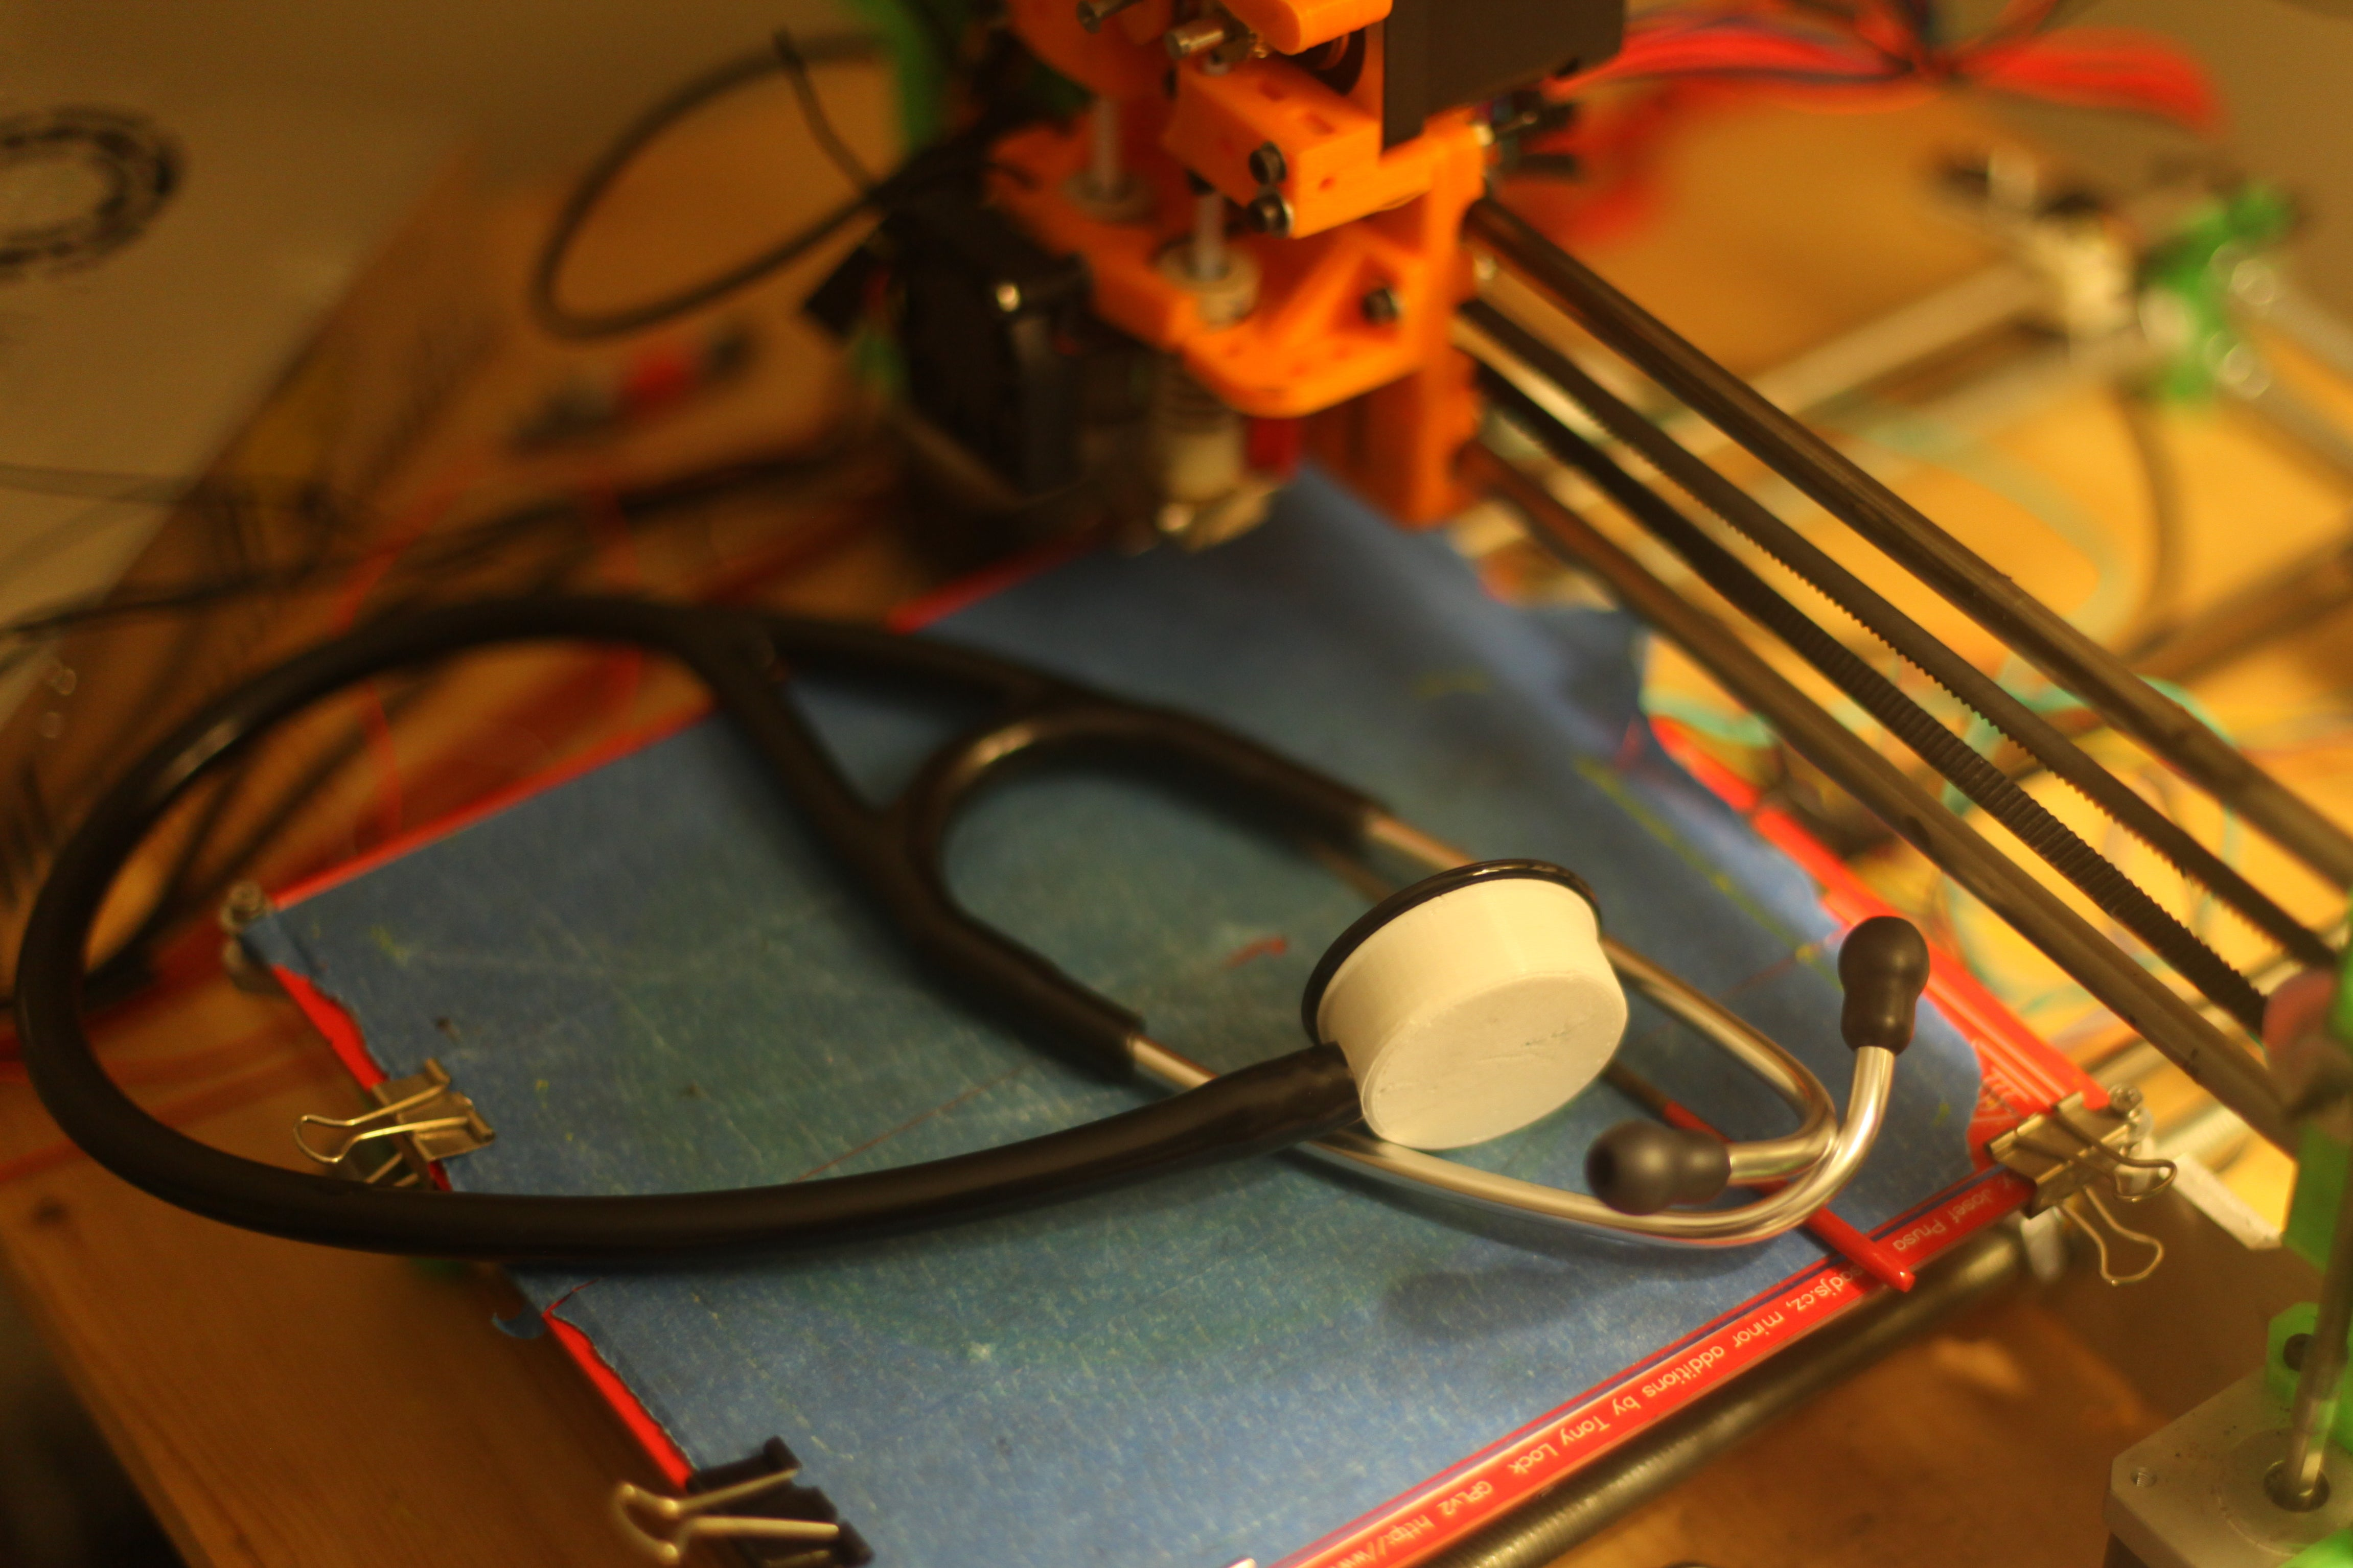 Doctors Print a Medical-Grade Stethoscope for Less than Five Bucks